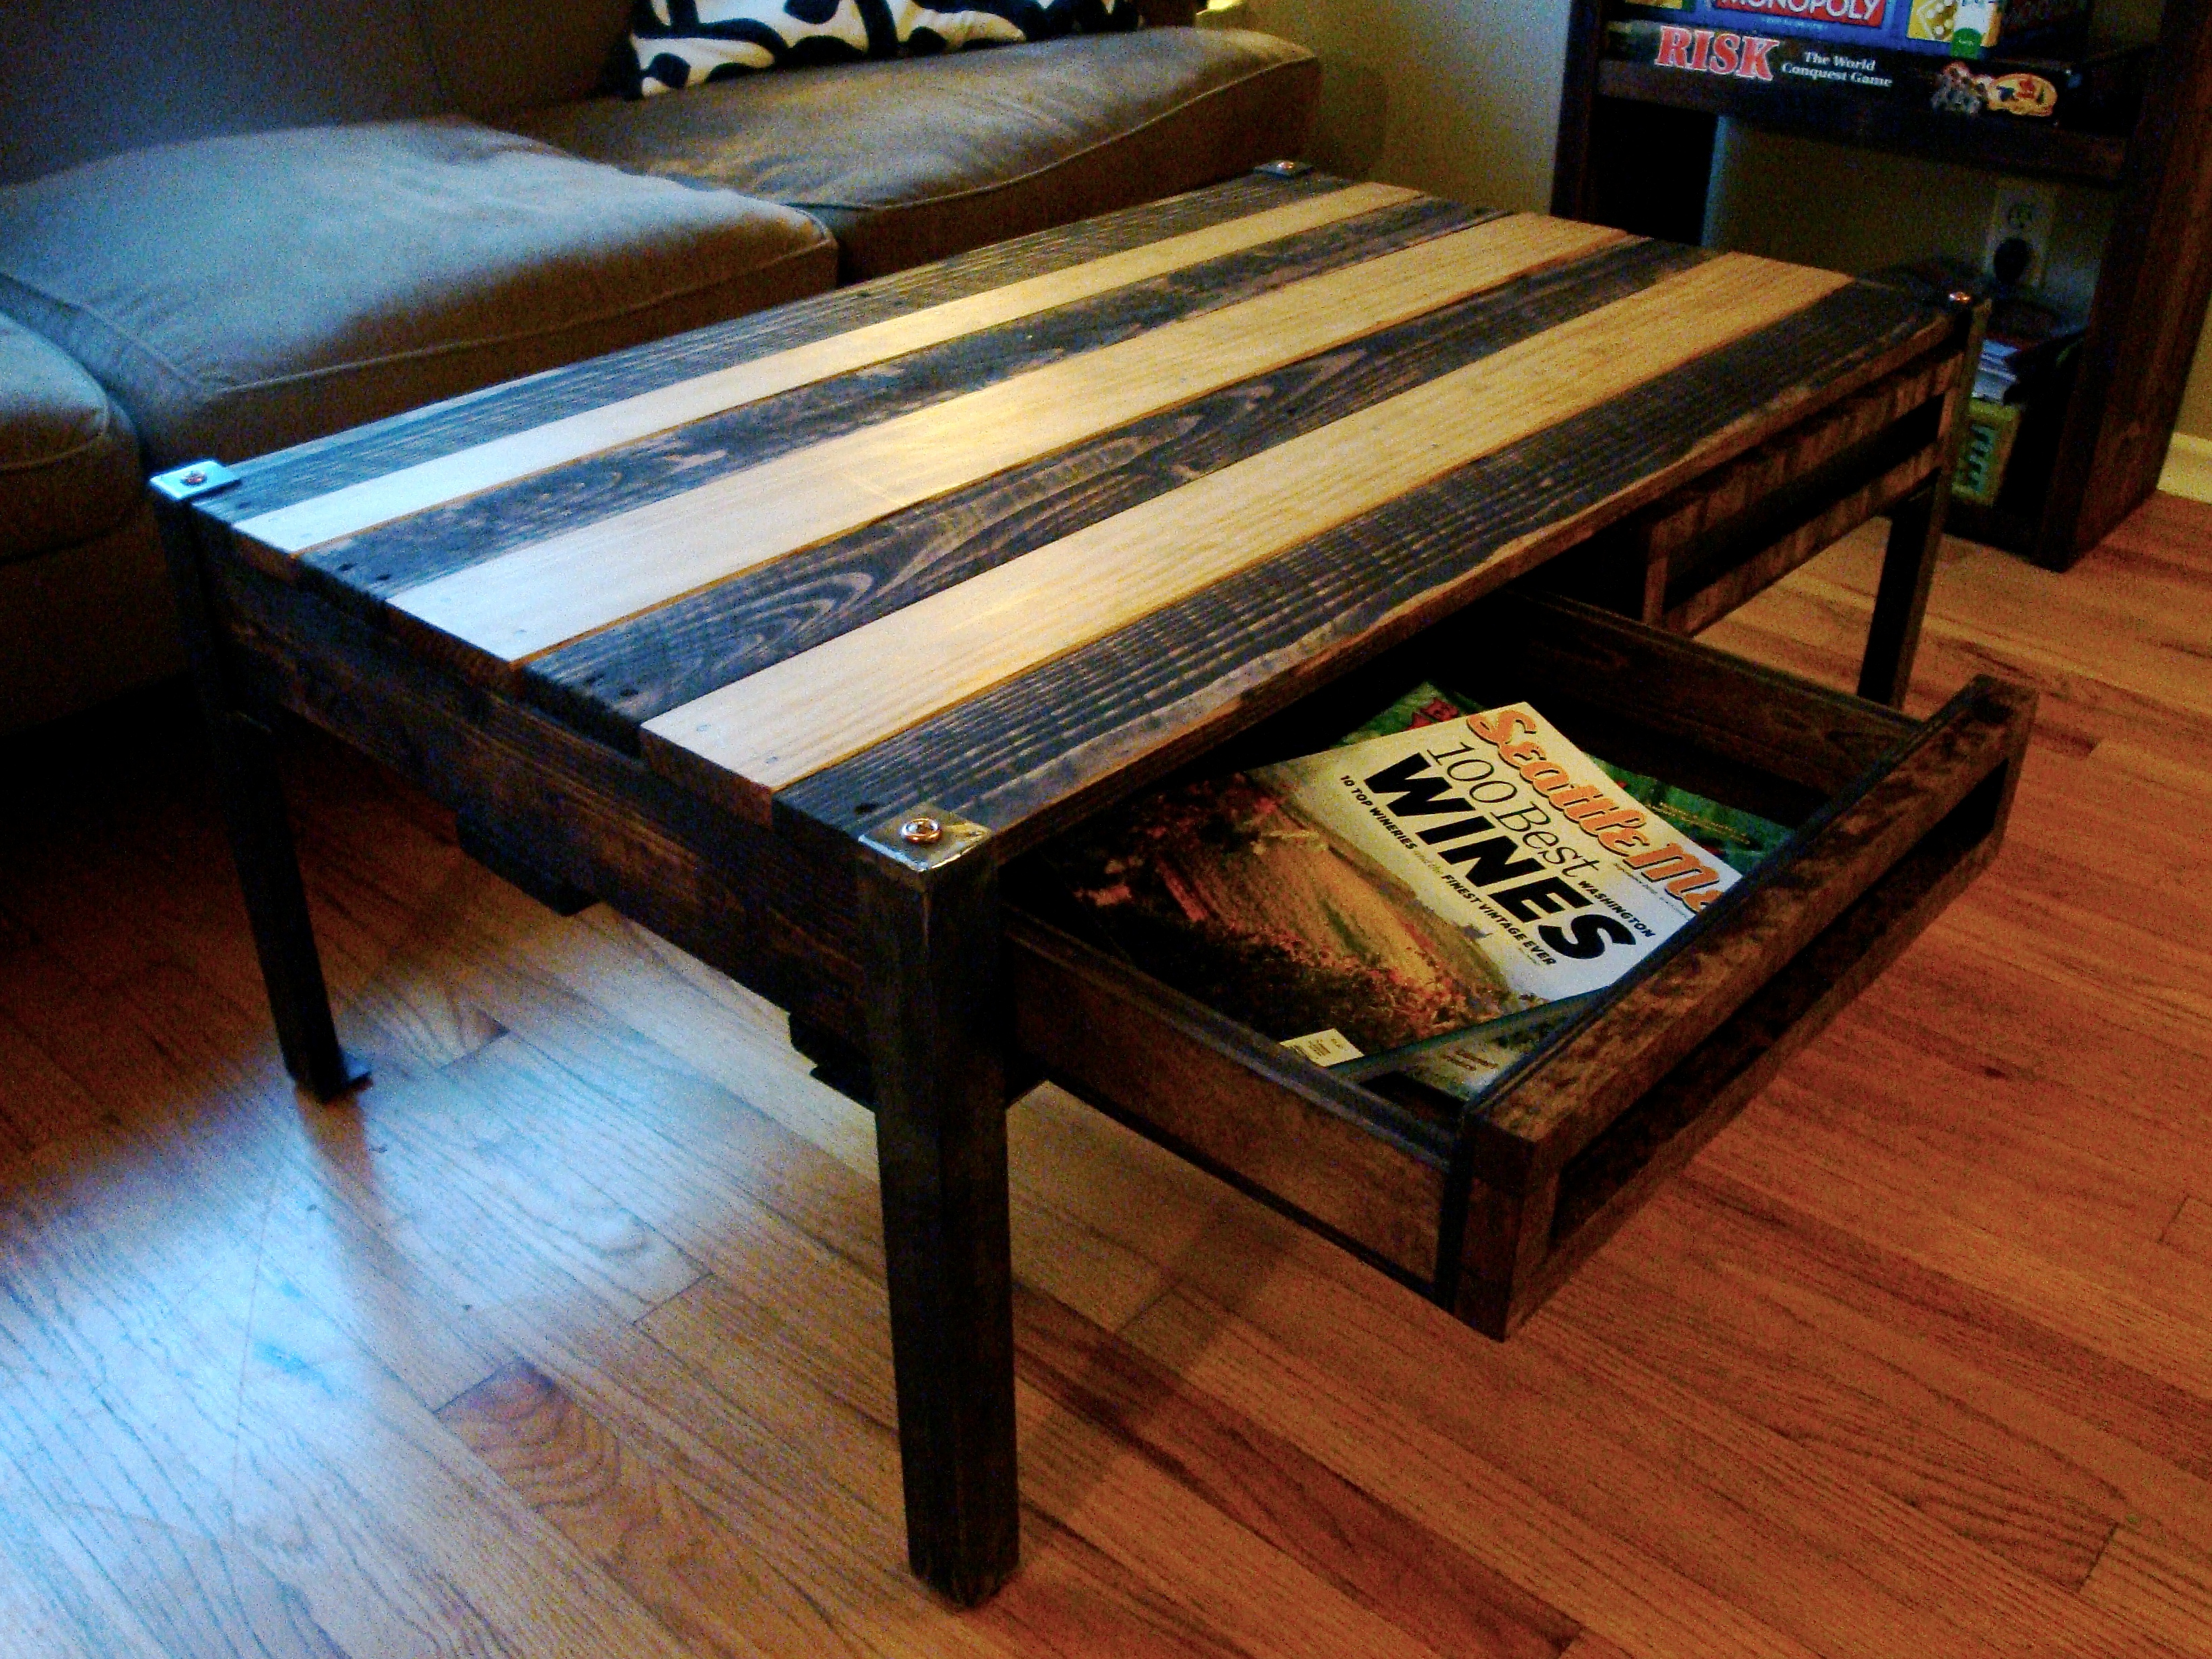 Attrayant Reclaimed Wood Pallet Coffee Table Image And Description